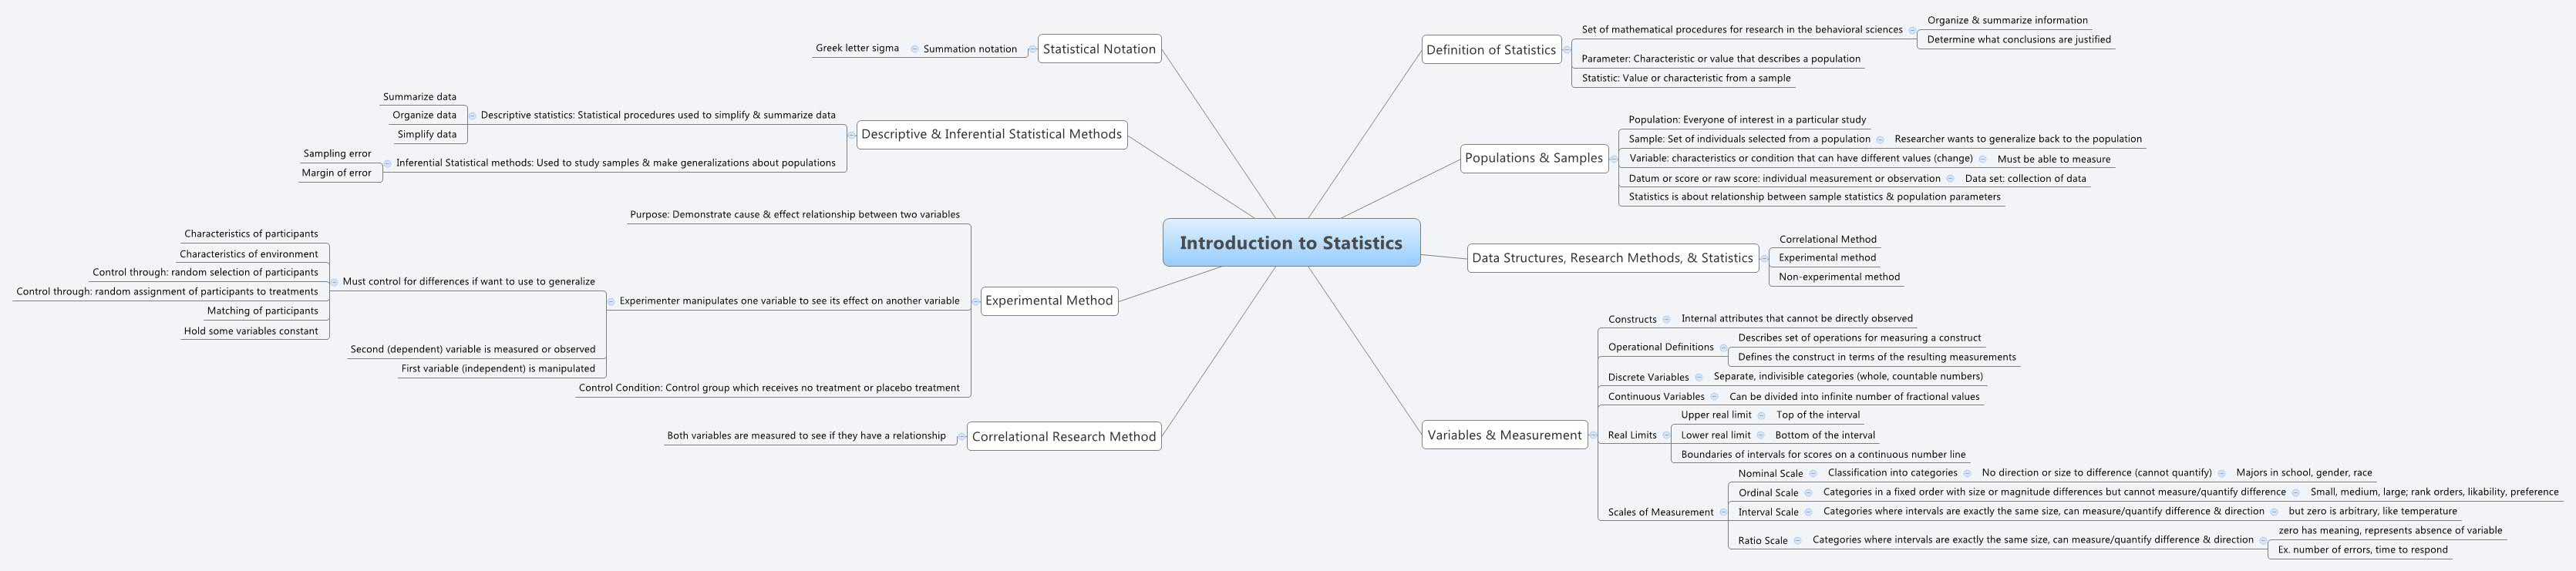 Introduction To Statistics Xmind Mind Mapping Software